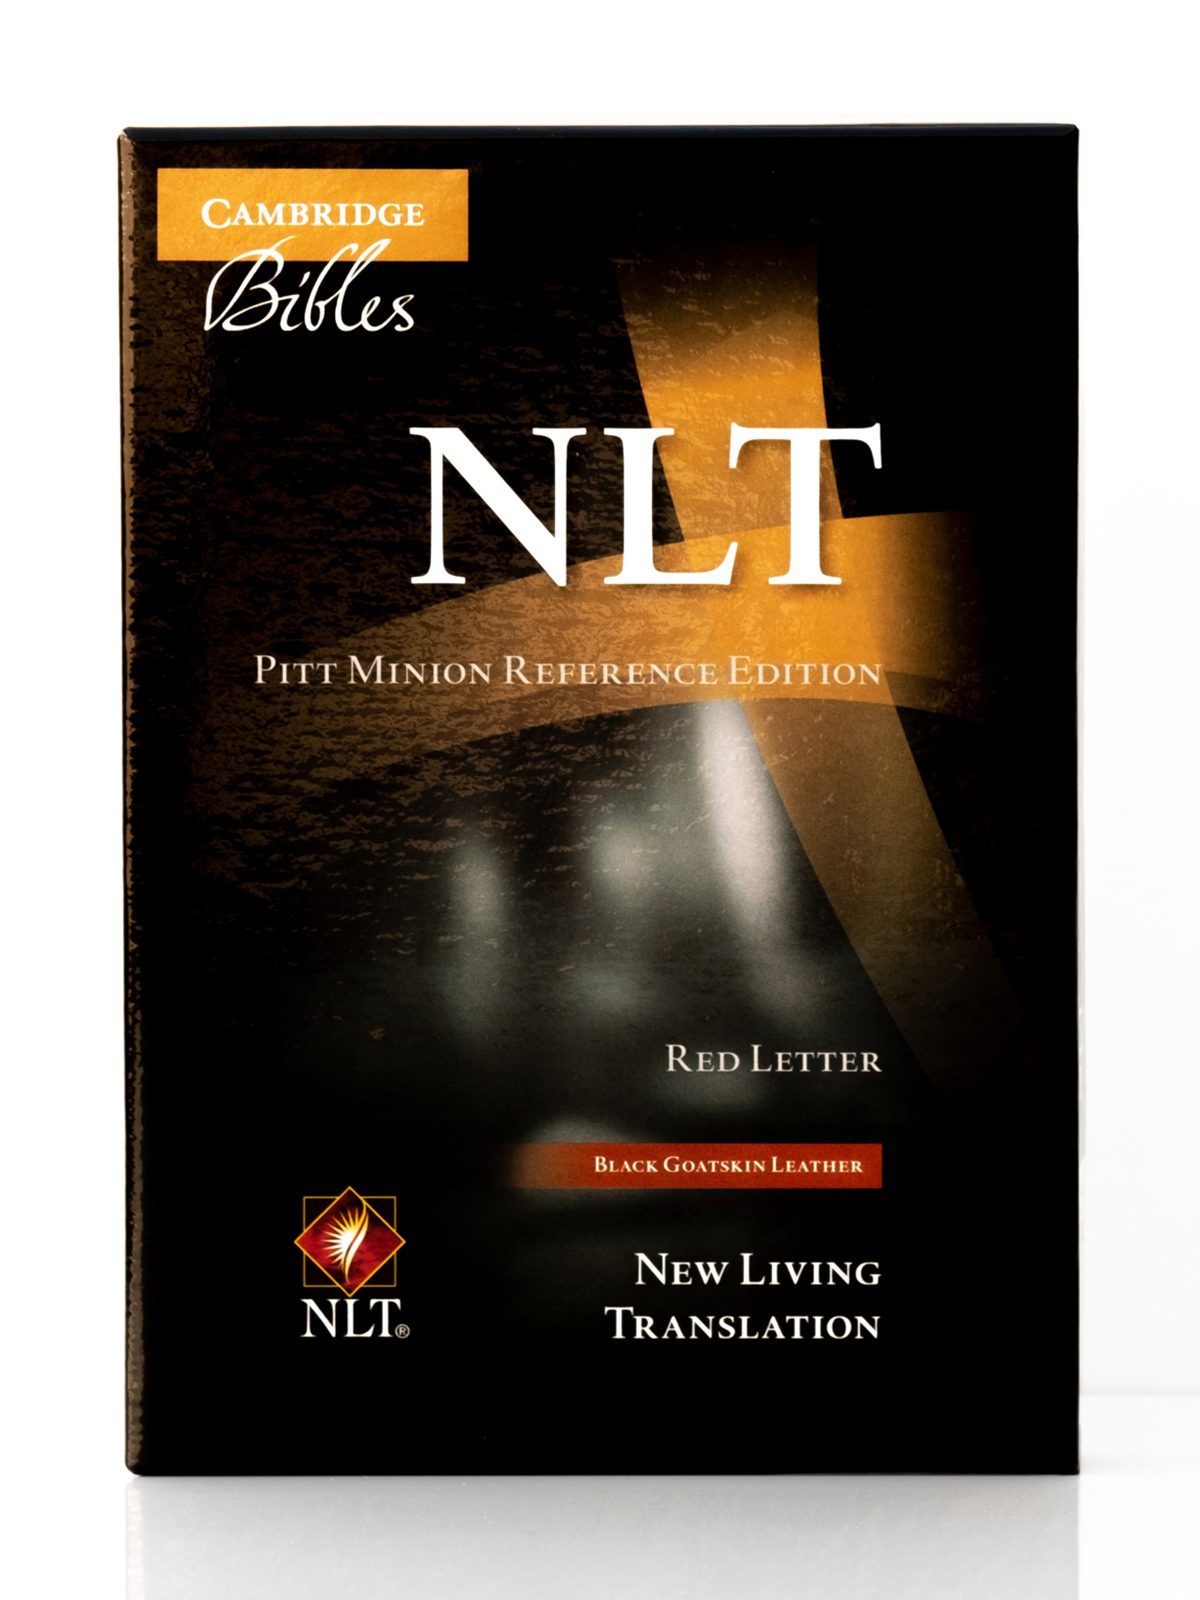 Cambridge NLT Pitt Minion Front Cover